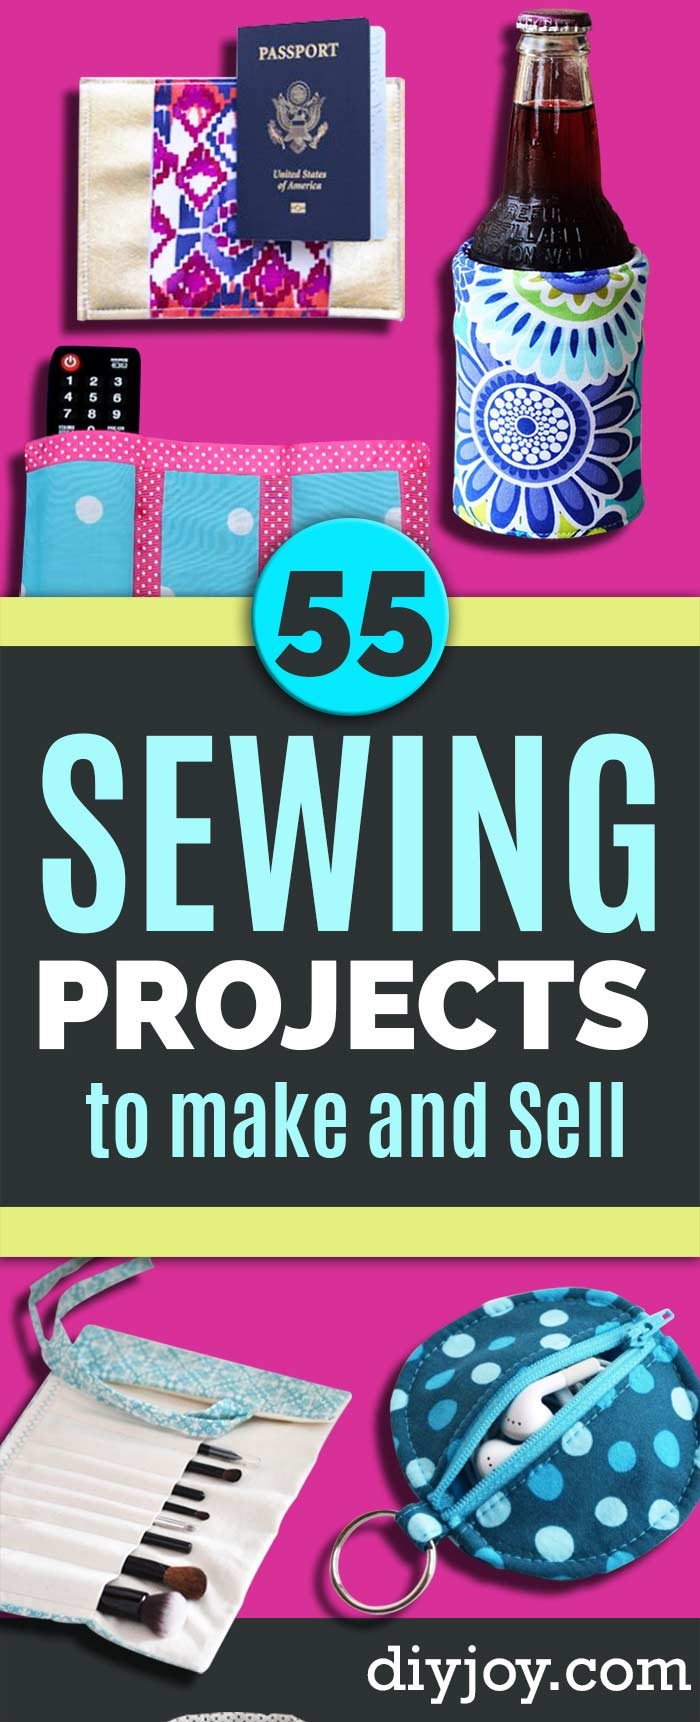 Sewing Projects to Make and Sell - Pin on Sewing Ideas to Sell for Profit - Free Patterns and Tutorial